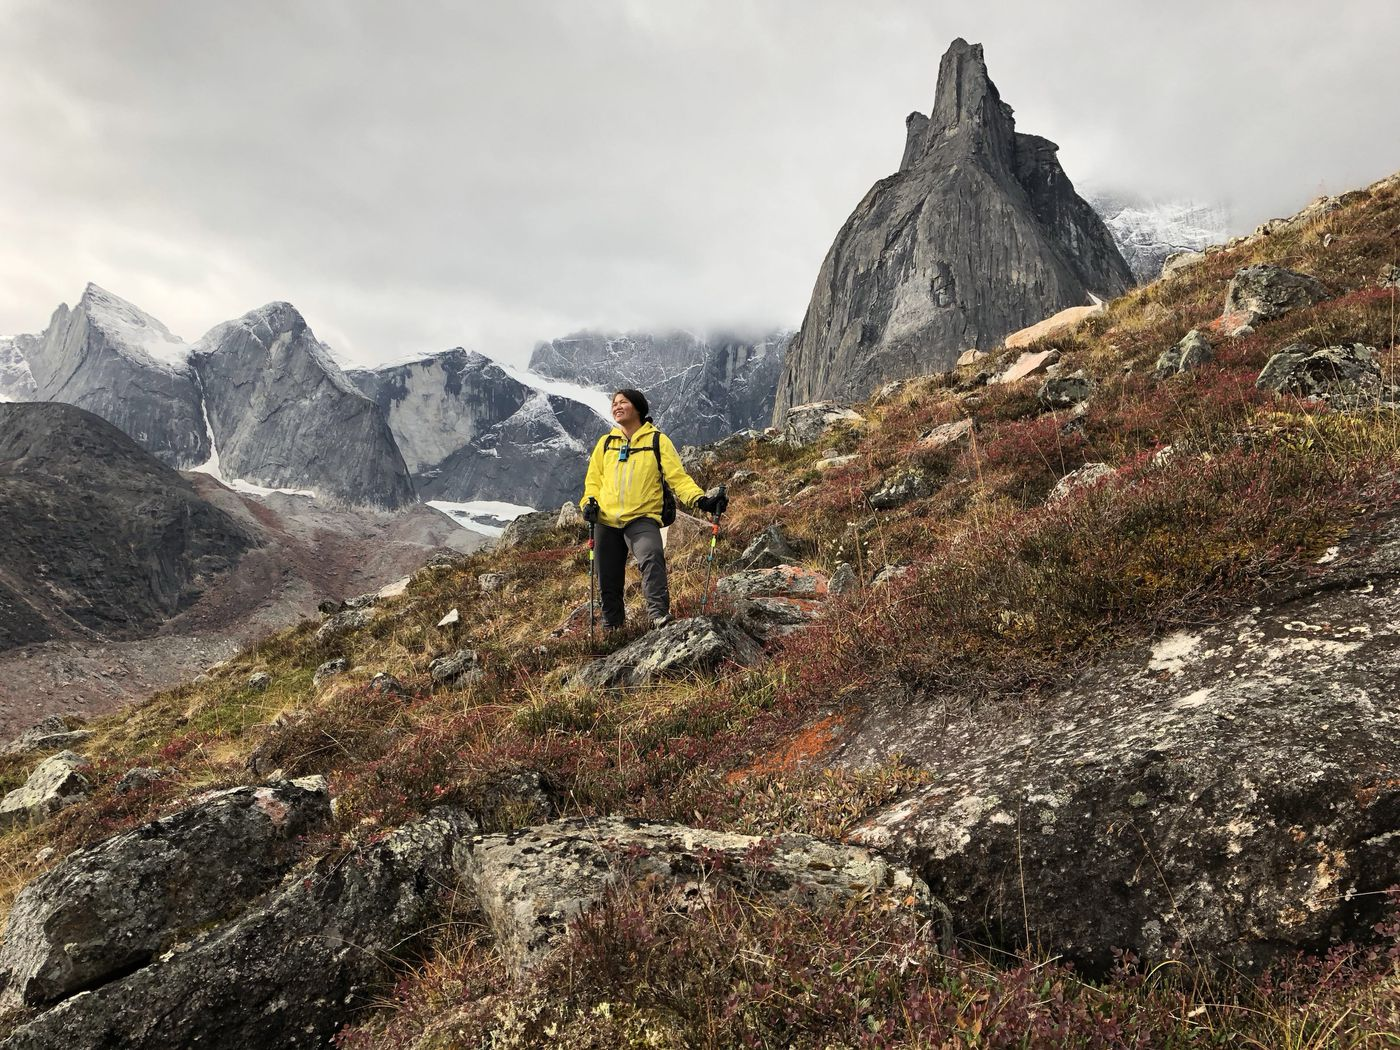 Vicky Ho admires the view of Arrigetch Valley while hiking in Gates of the Arctic National Park on Saturday, Sept. 1, 2018. (Jussi Ruottinen)